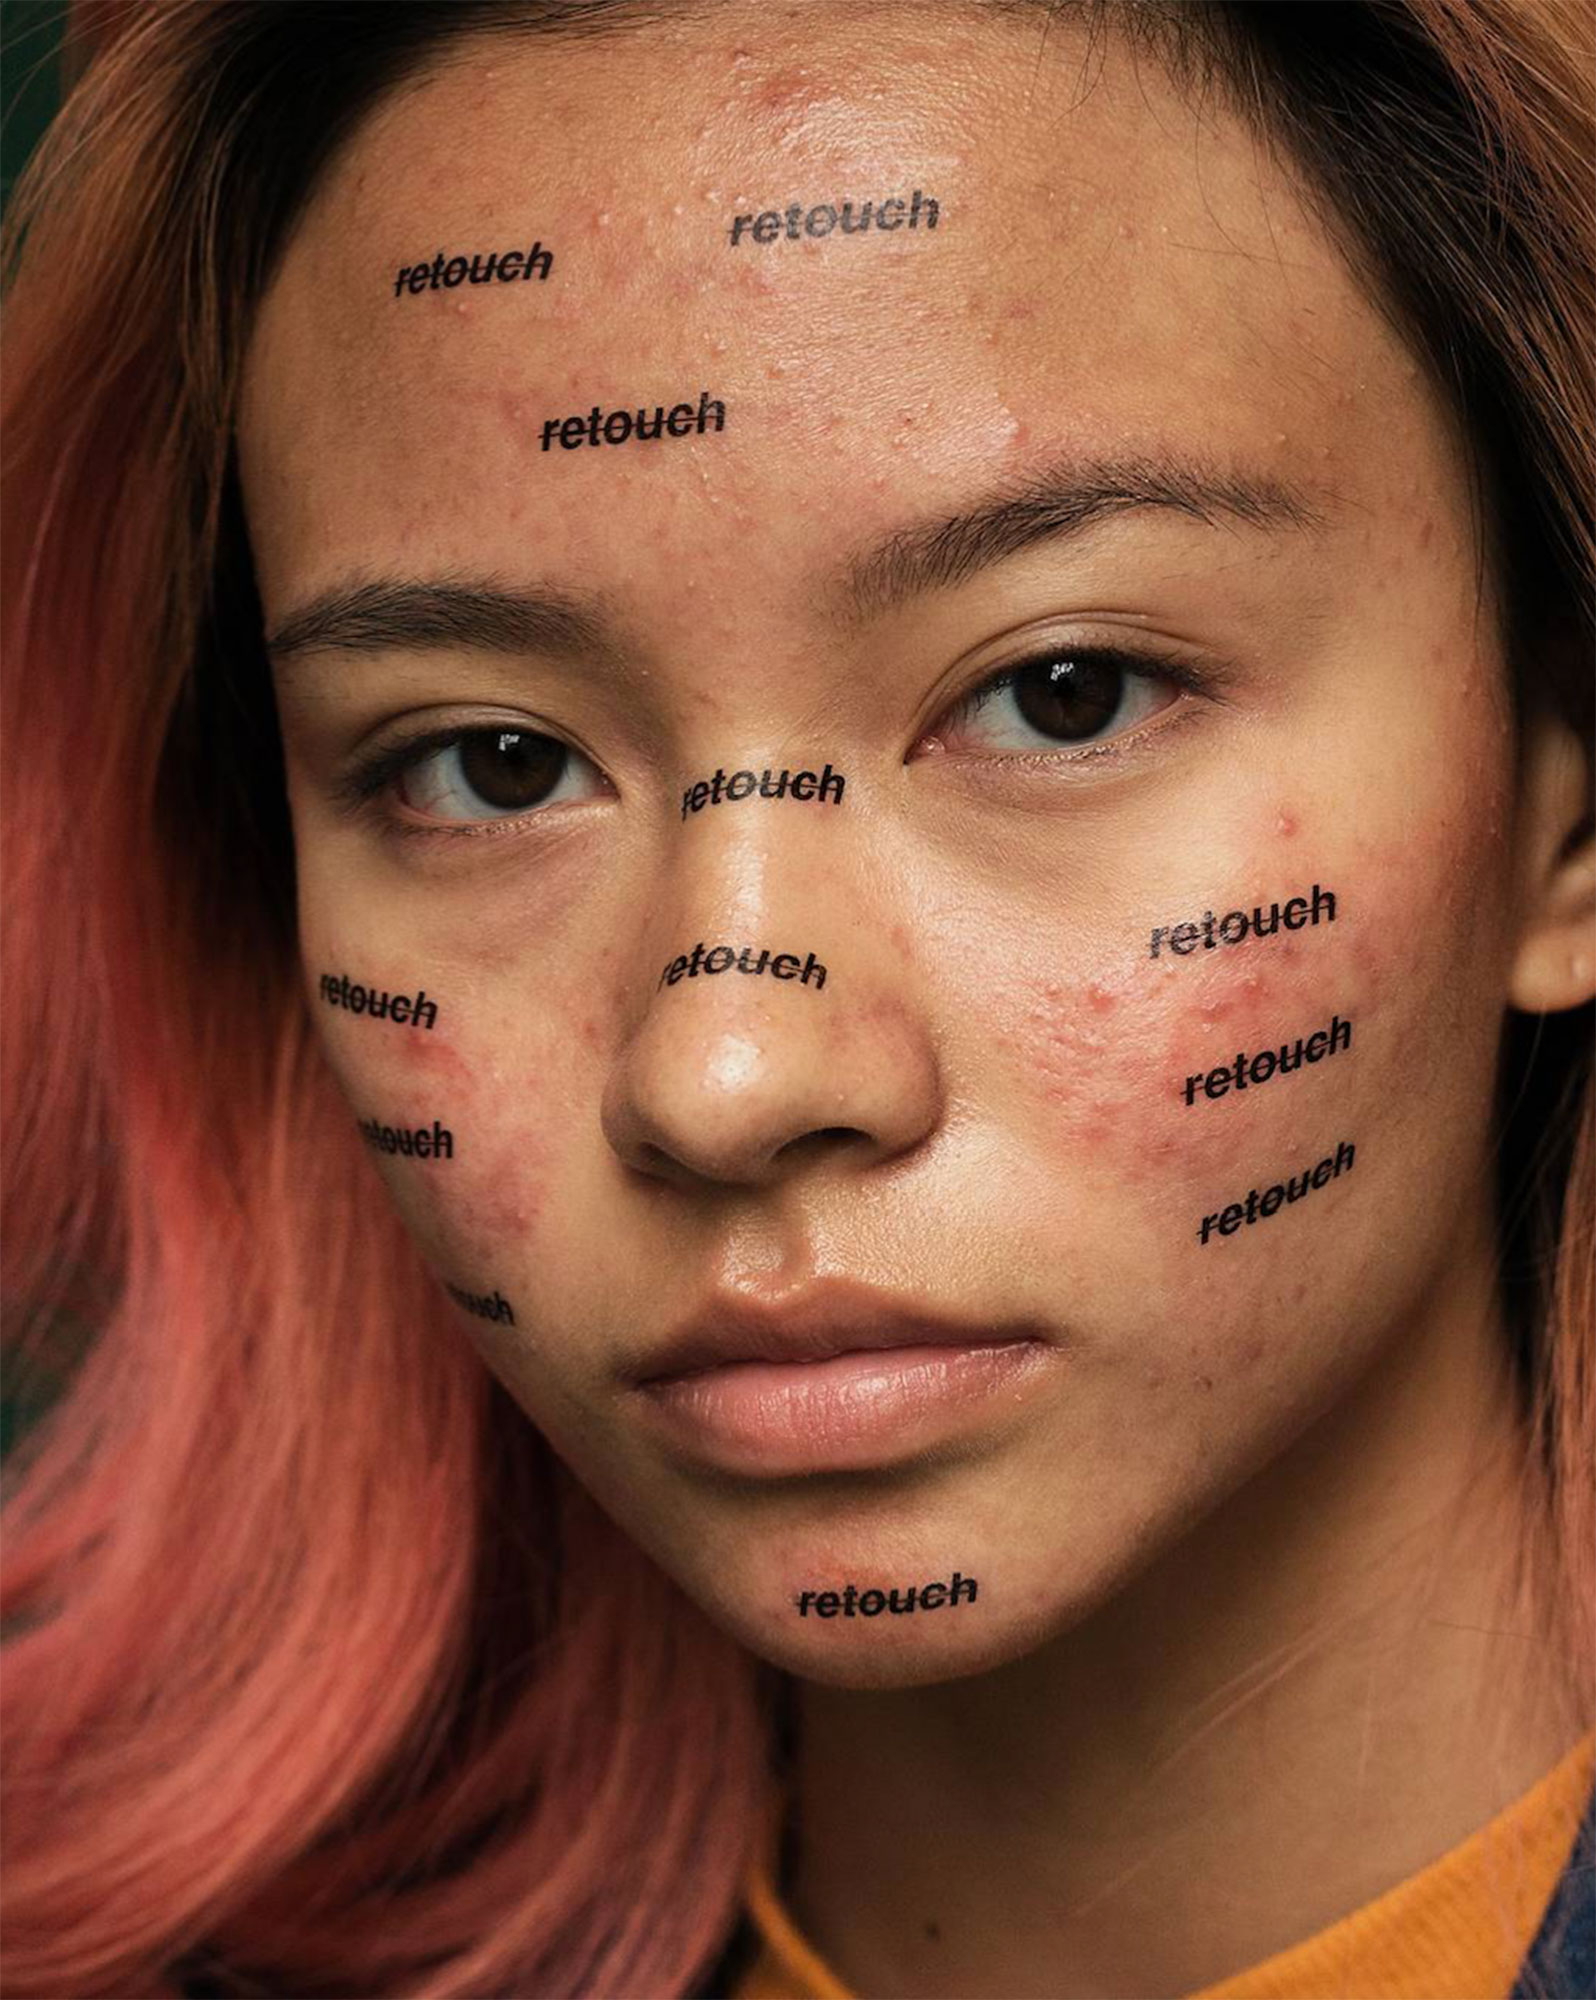 Photographer Creates Brave Portrait Series to Normalize Acne After Years of Photoshopping Himself